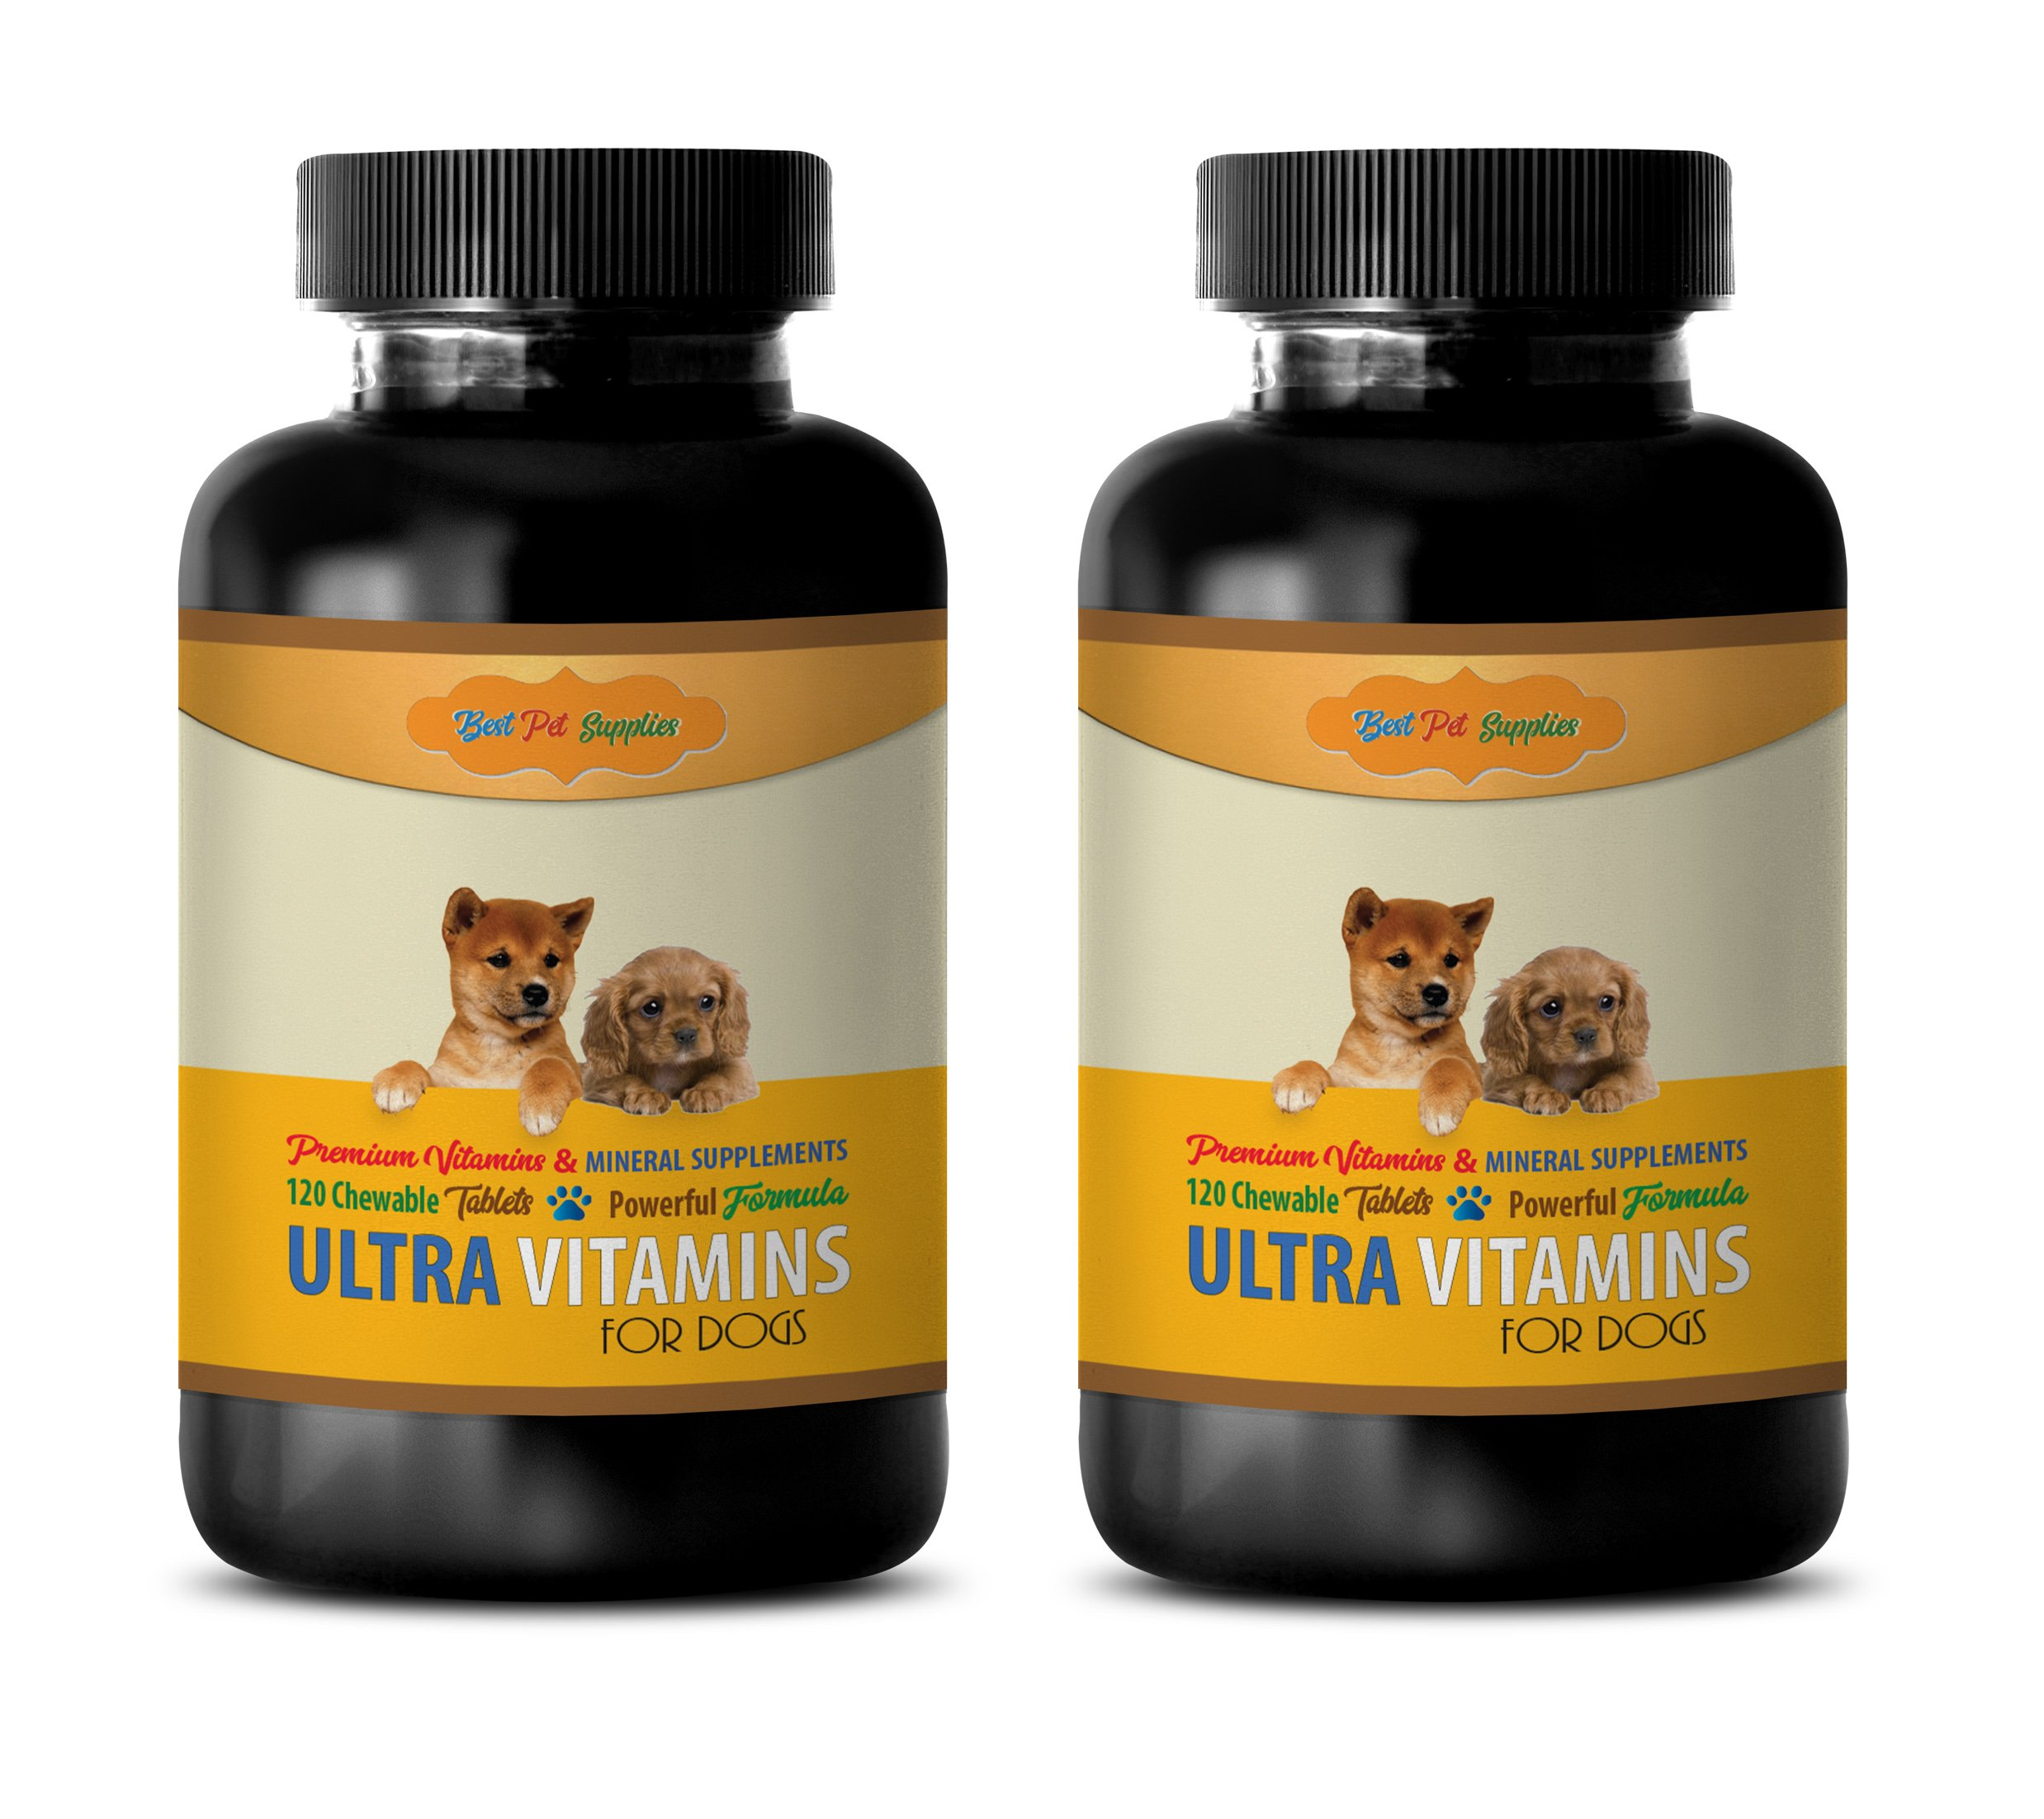 BEST PET SUPPLIES LLC dogs teeth cleaning treats - PREMIUM ULTRA VITAMINS - FOR DOGS ONLY - MINERAL SUPPORT - POWERFUL FORMULA - CHEWY TREATS - vitamin b for dogs - 240 Chews (2 Bottle) by BEST PET SUPPLIES LLC